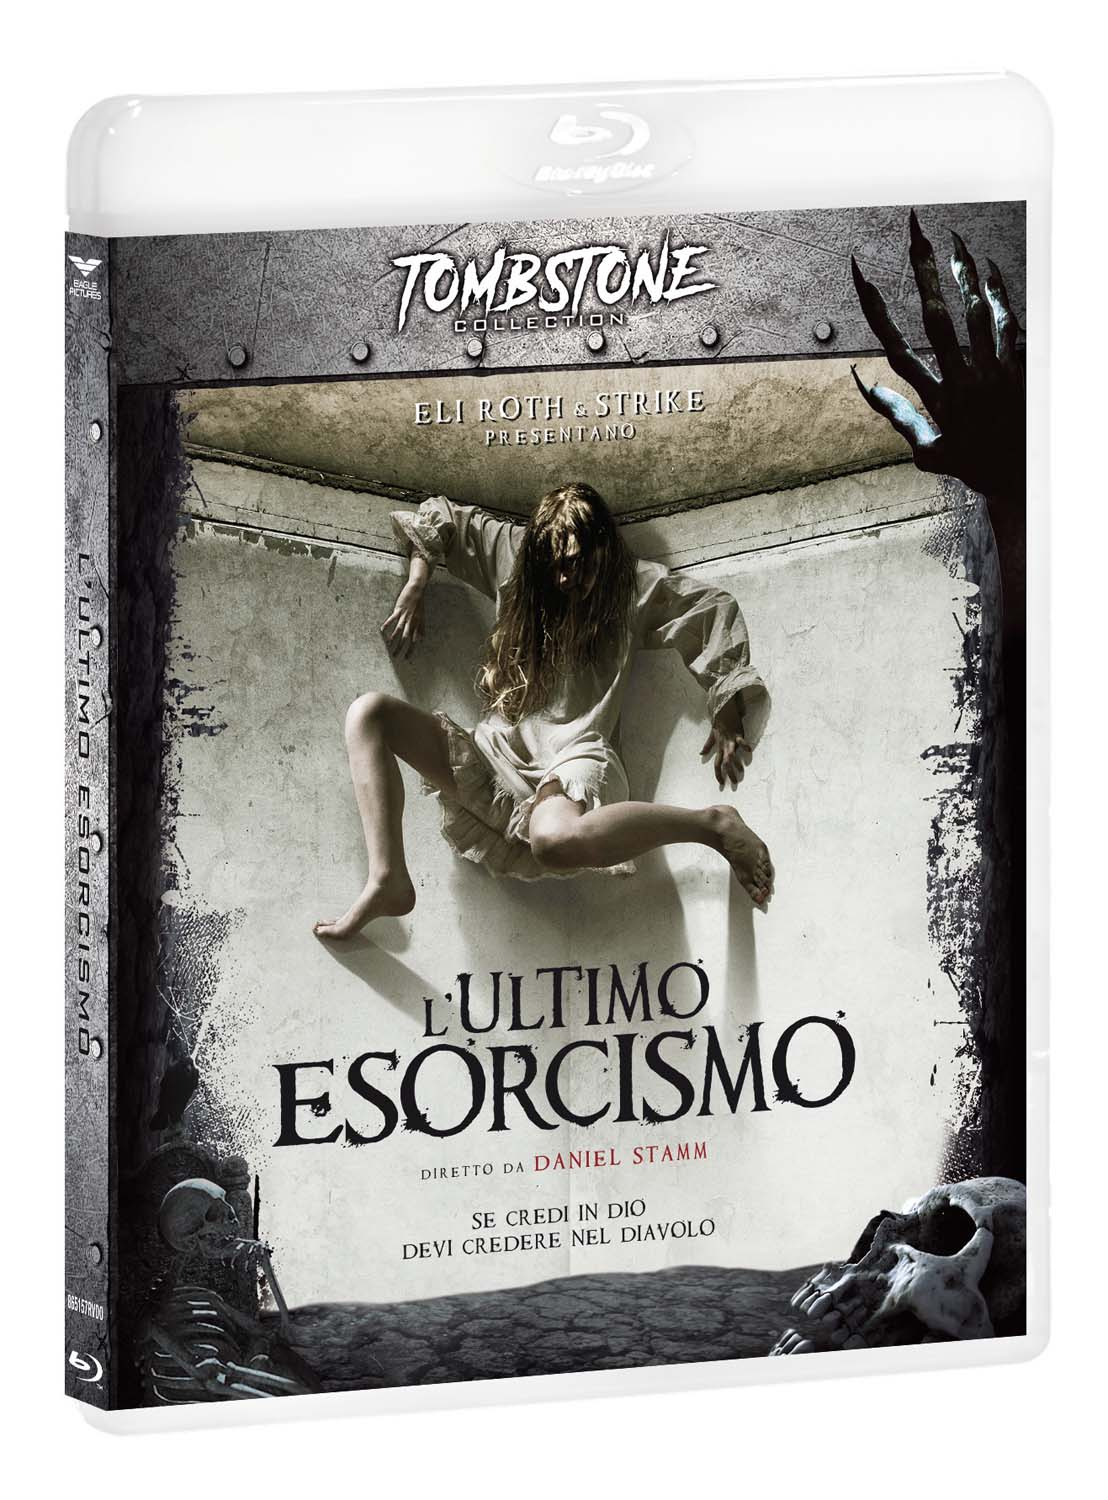 L'ULTIMO ESORCISMO (TOMBSTONE)